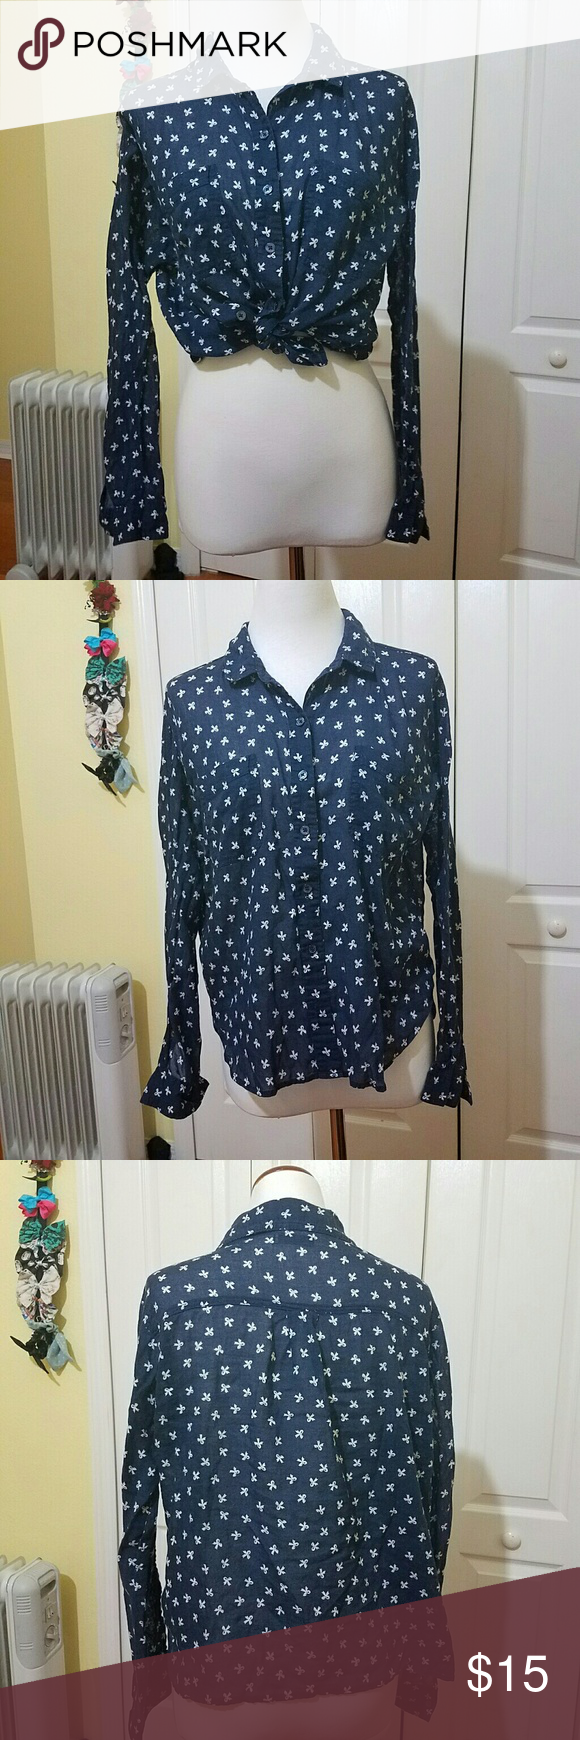 Sheer blue button down shirt Semi-sheer navy blue with little white bows, looks super cute tied up or open over a tank top! Excellent condition, super flattering cut, perfect for summer! BDG Tops Button Down Shirts